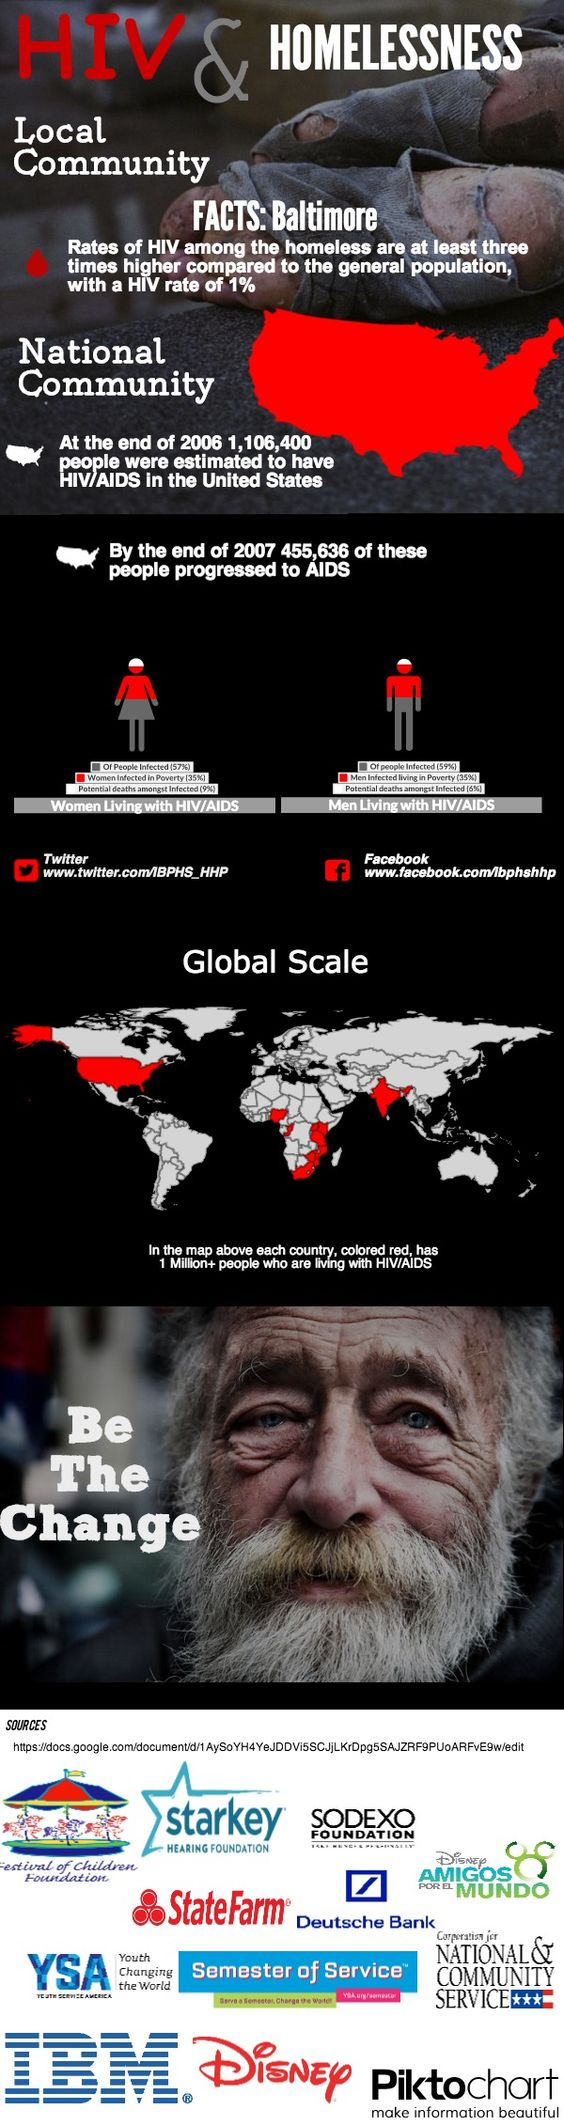 HIV & Homelessness | Created in #free @Piktochart #Infographic Editor at www.piktochart.com